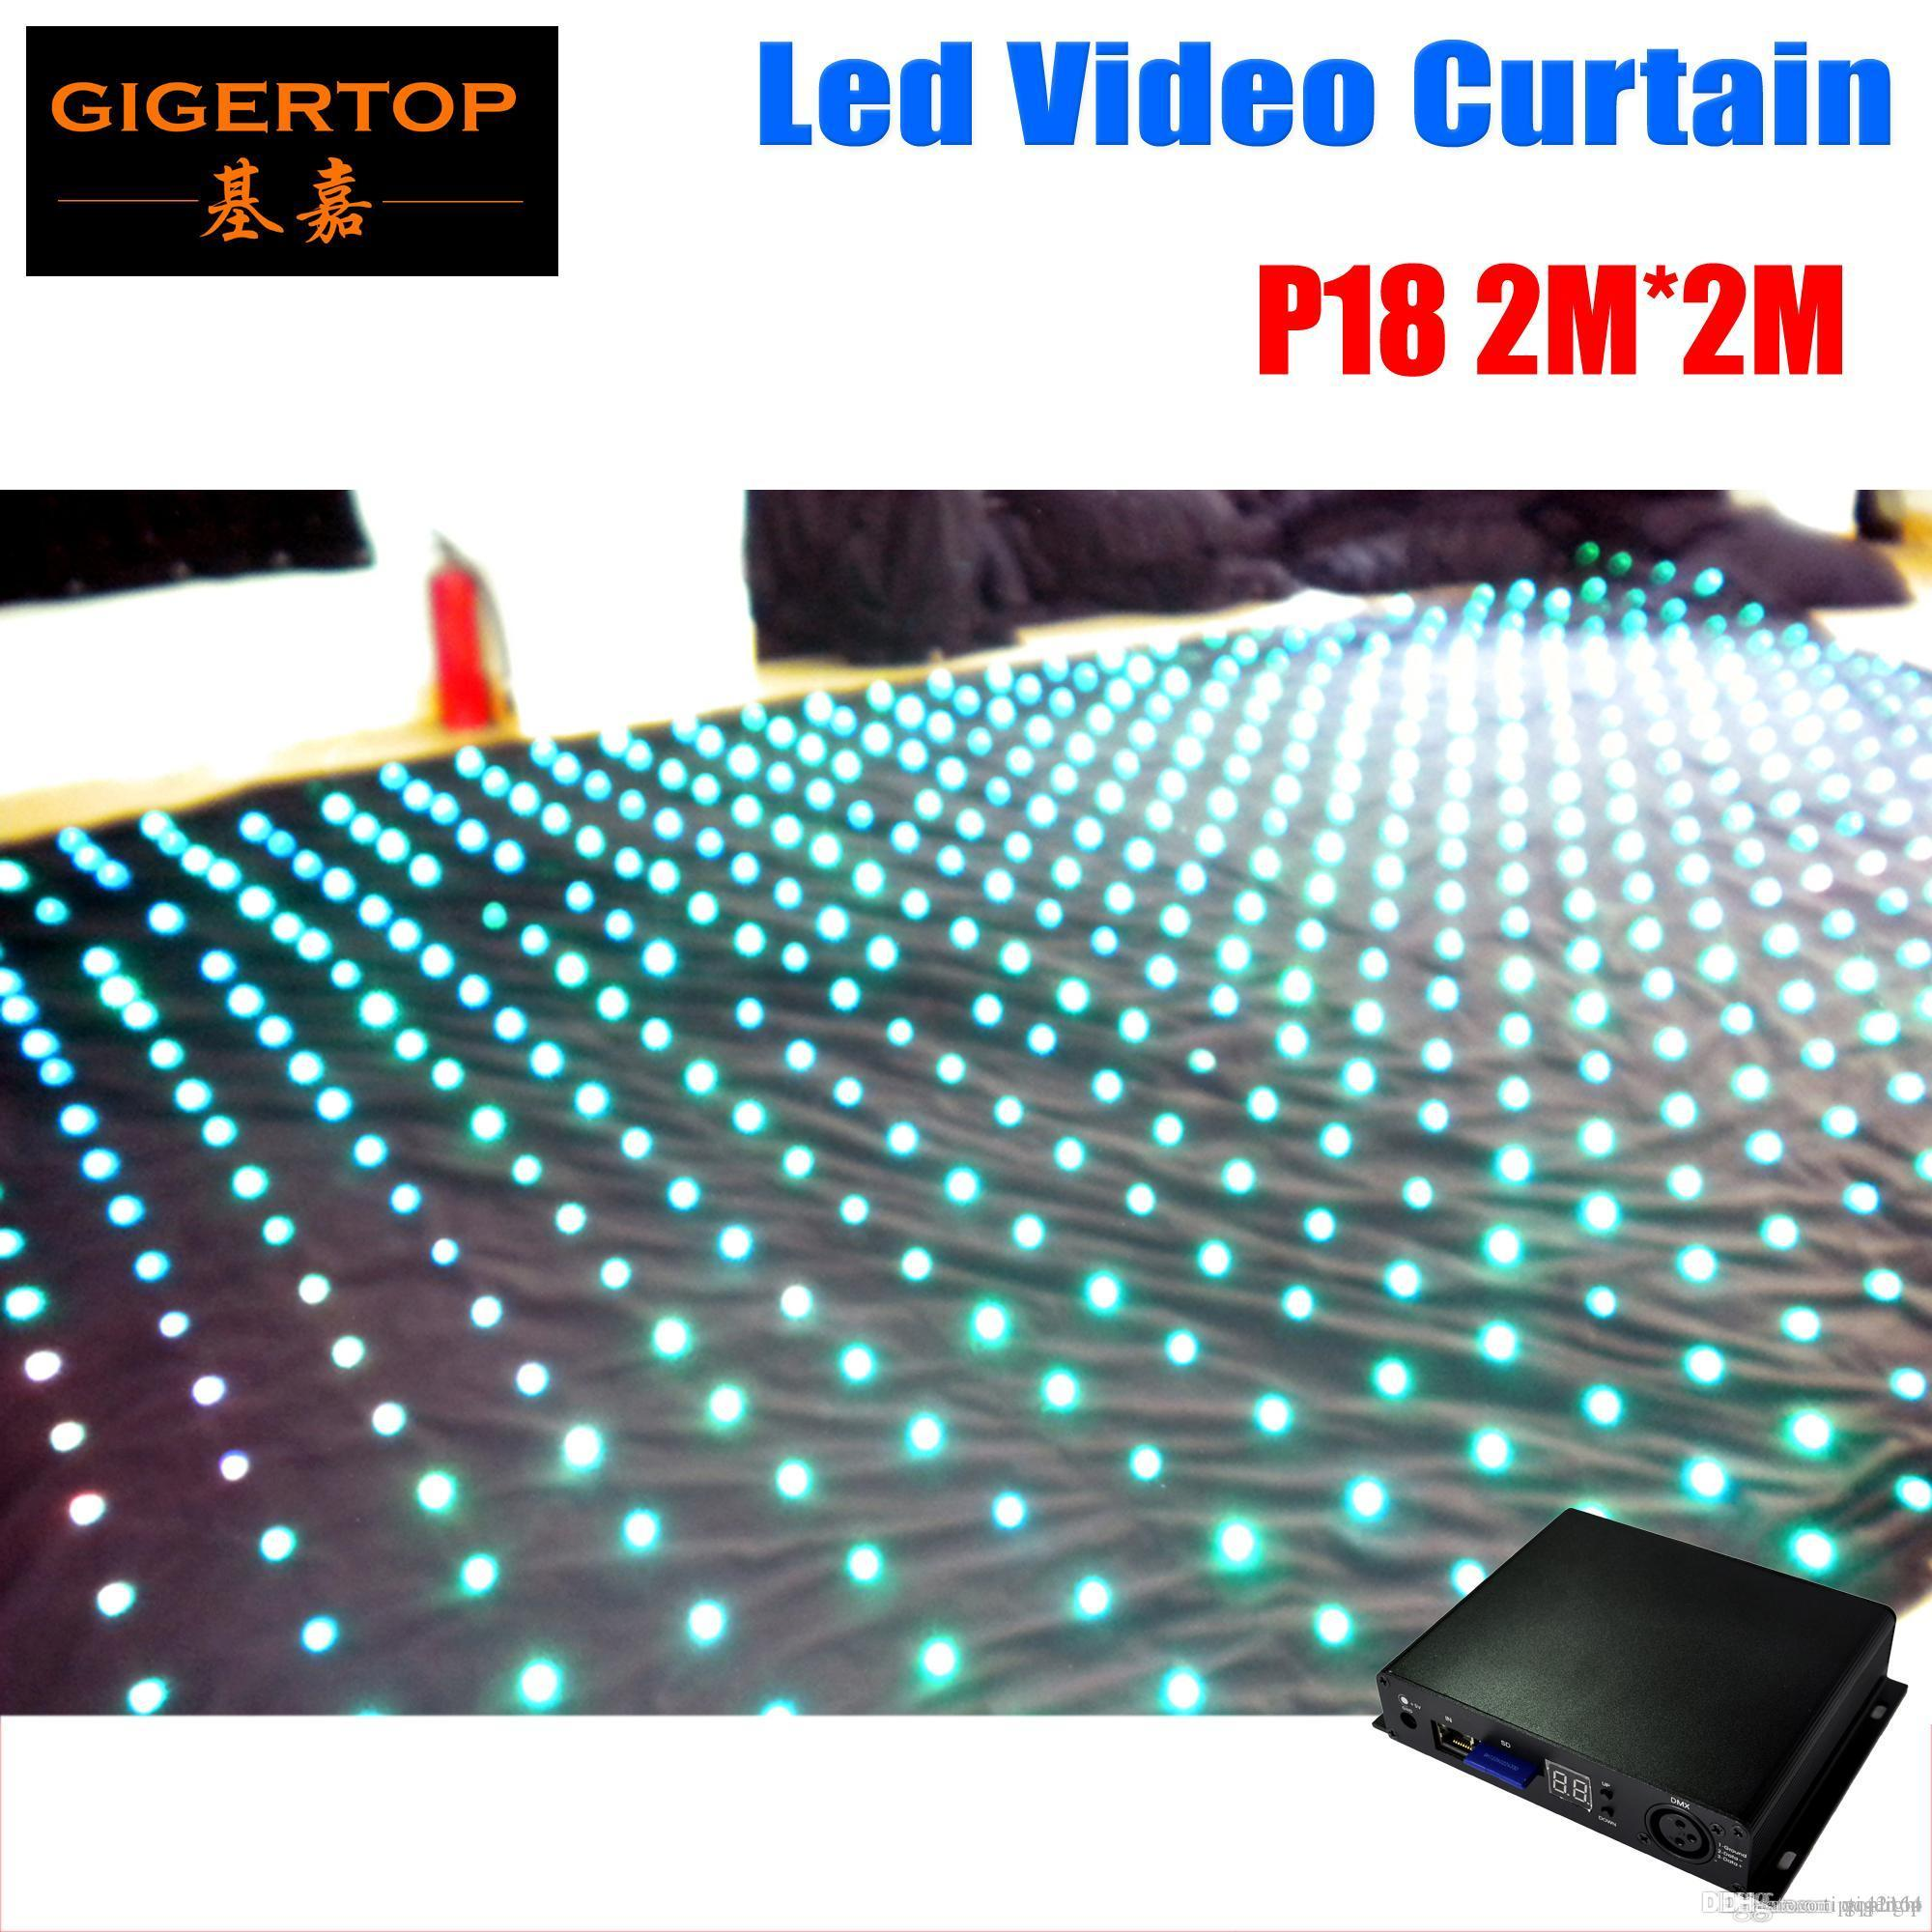 Wholesale Fire-proof Pitch 18 2M*2M LED Star Curtain On/Off Line Mode Controller LED Video Curtain For DJ Wedding Backdrops